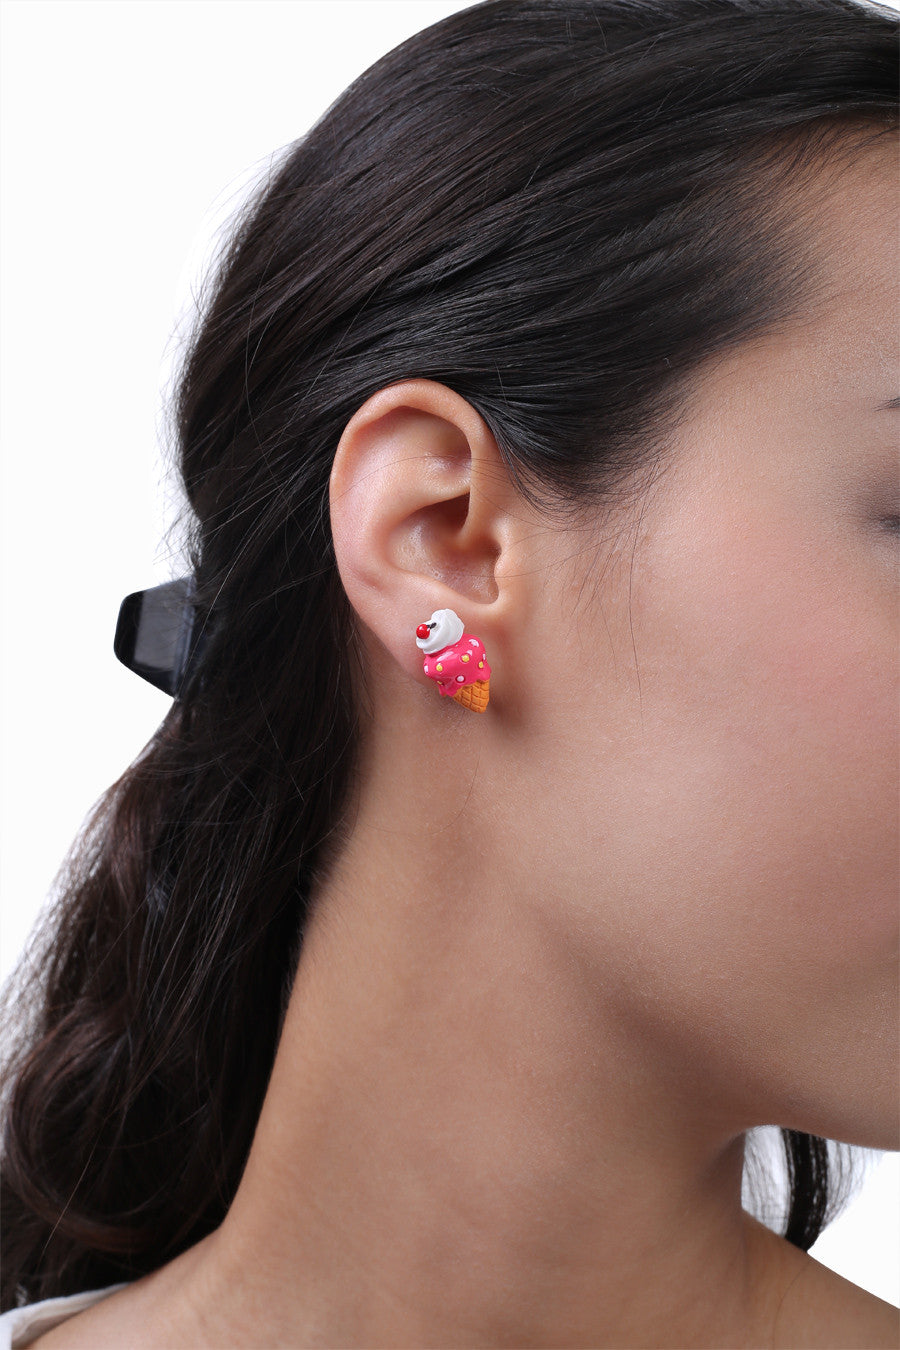 Strawberry Ice Cream Ear Stud